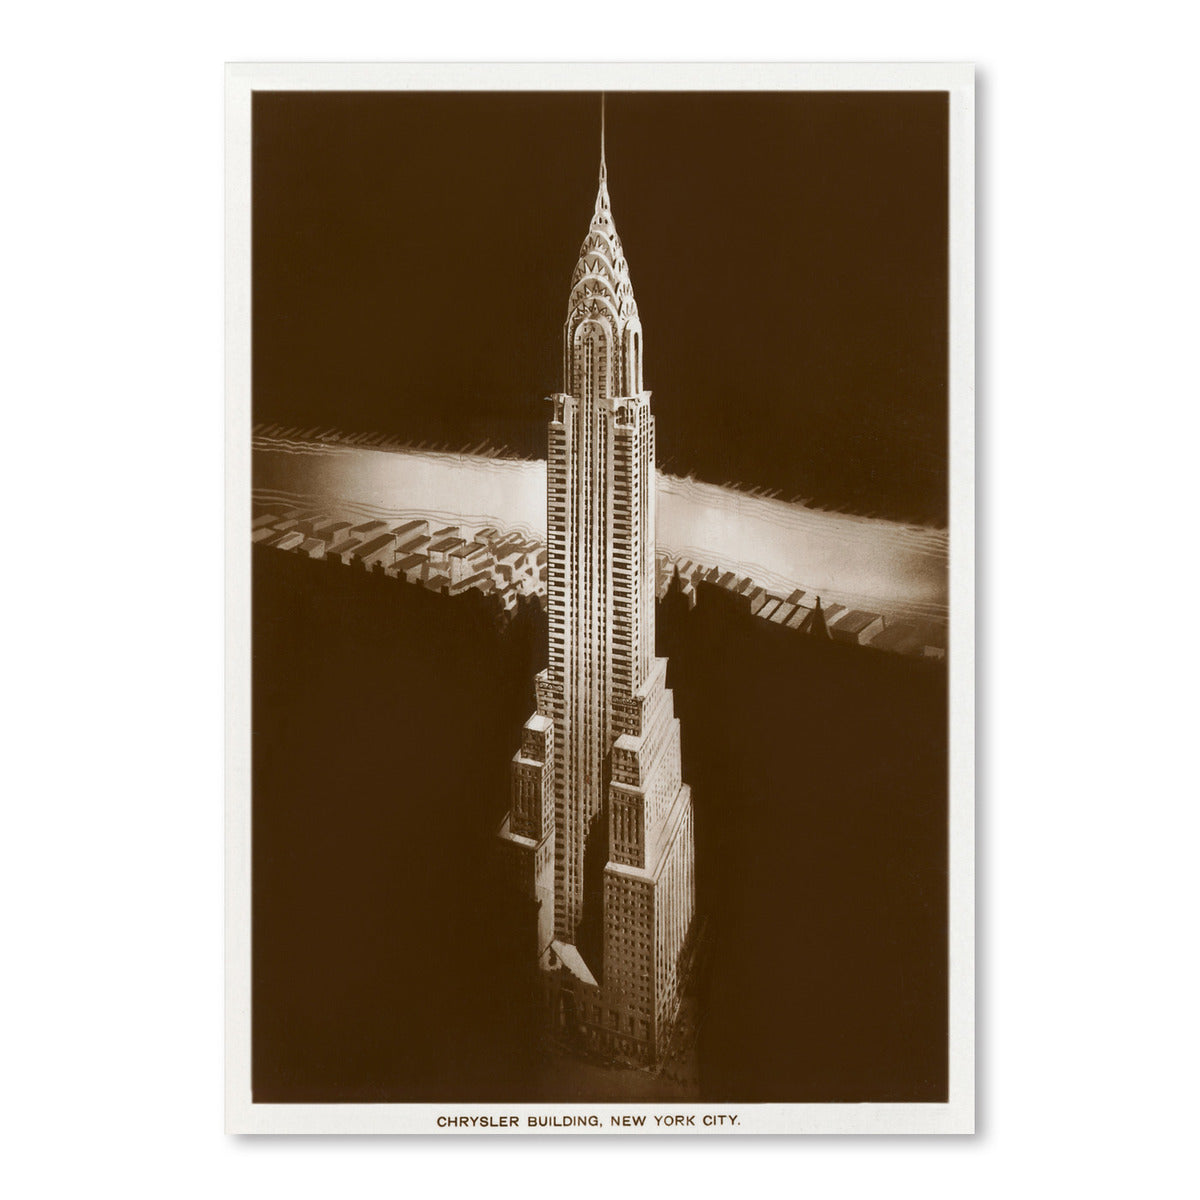 Chrysler Building Manhattan by Found Image Press Art Print - Art Print - Americanflat